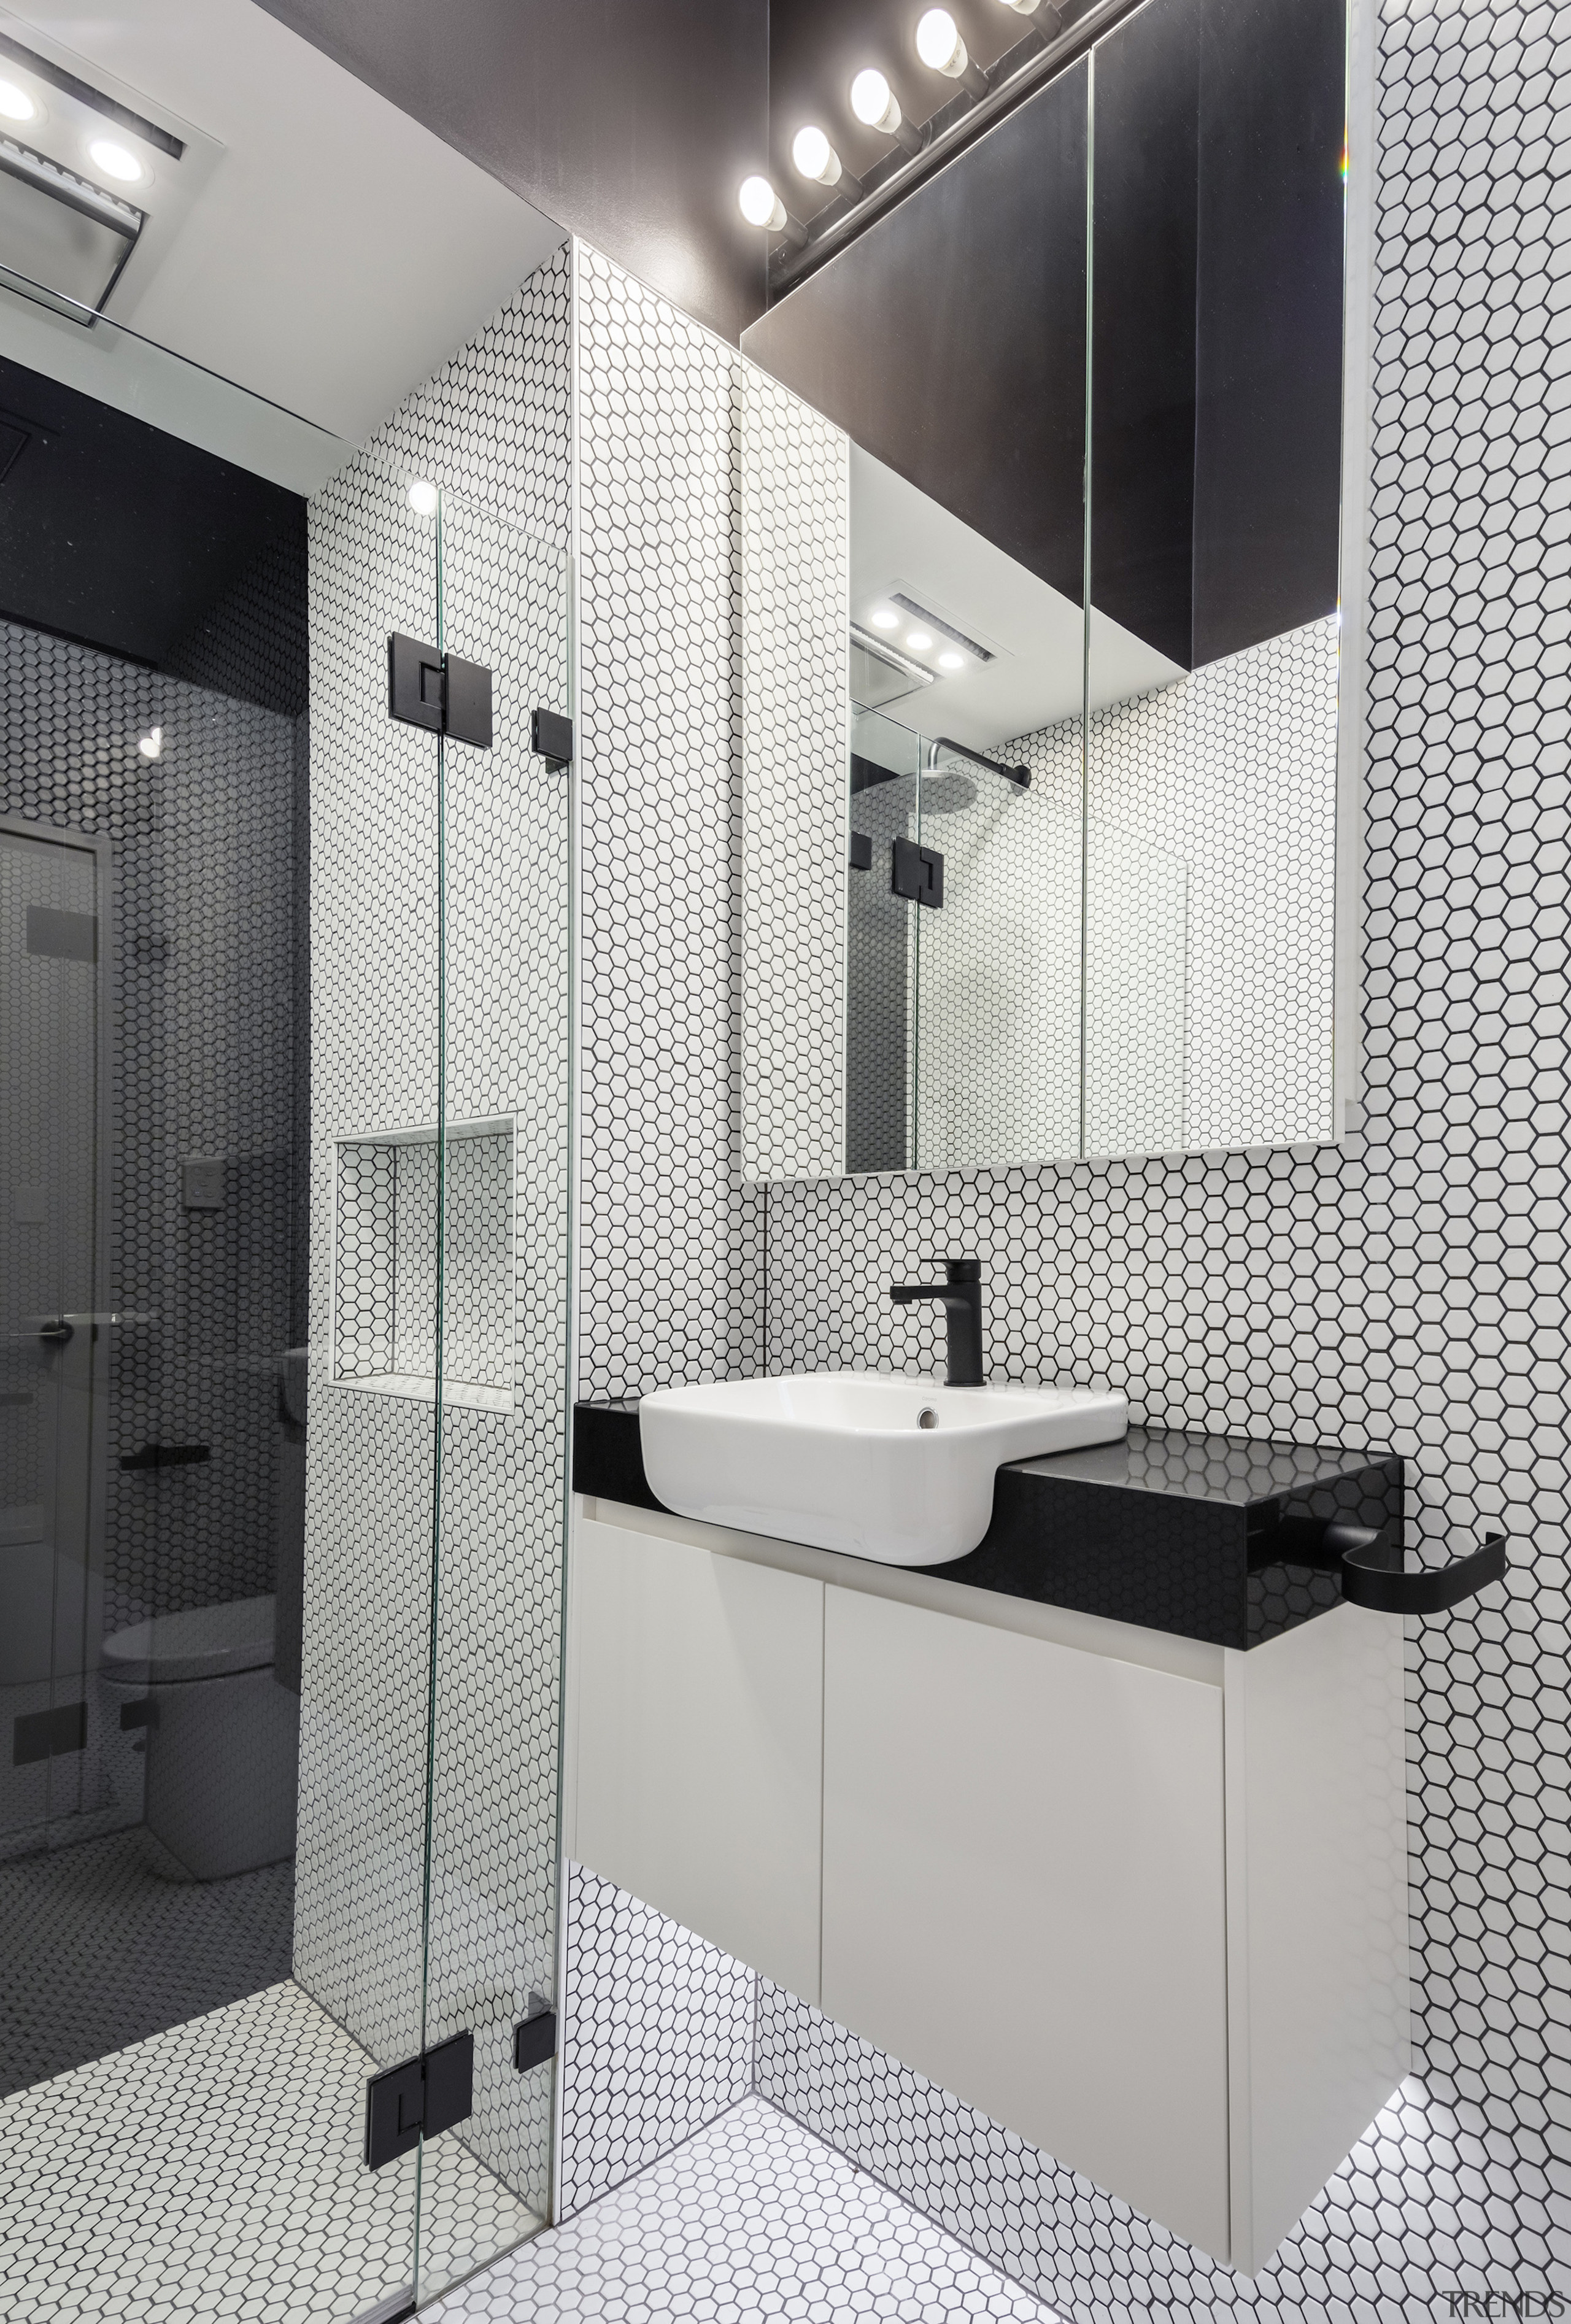 A light-filled and distinctly modern bathroom in the